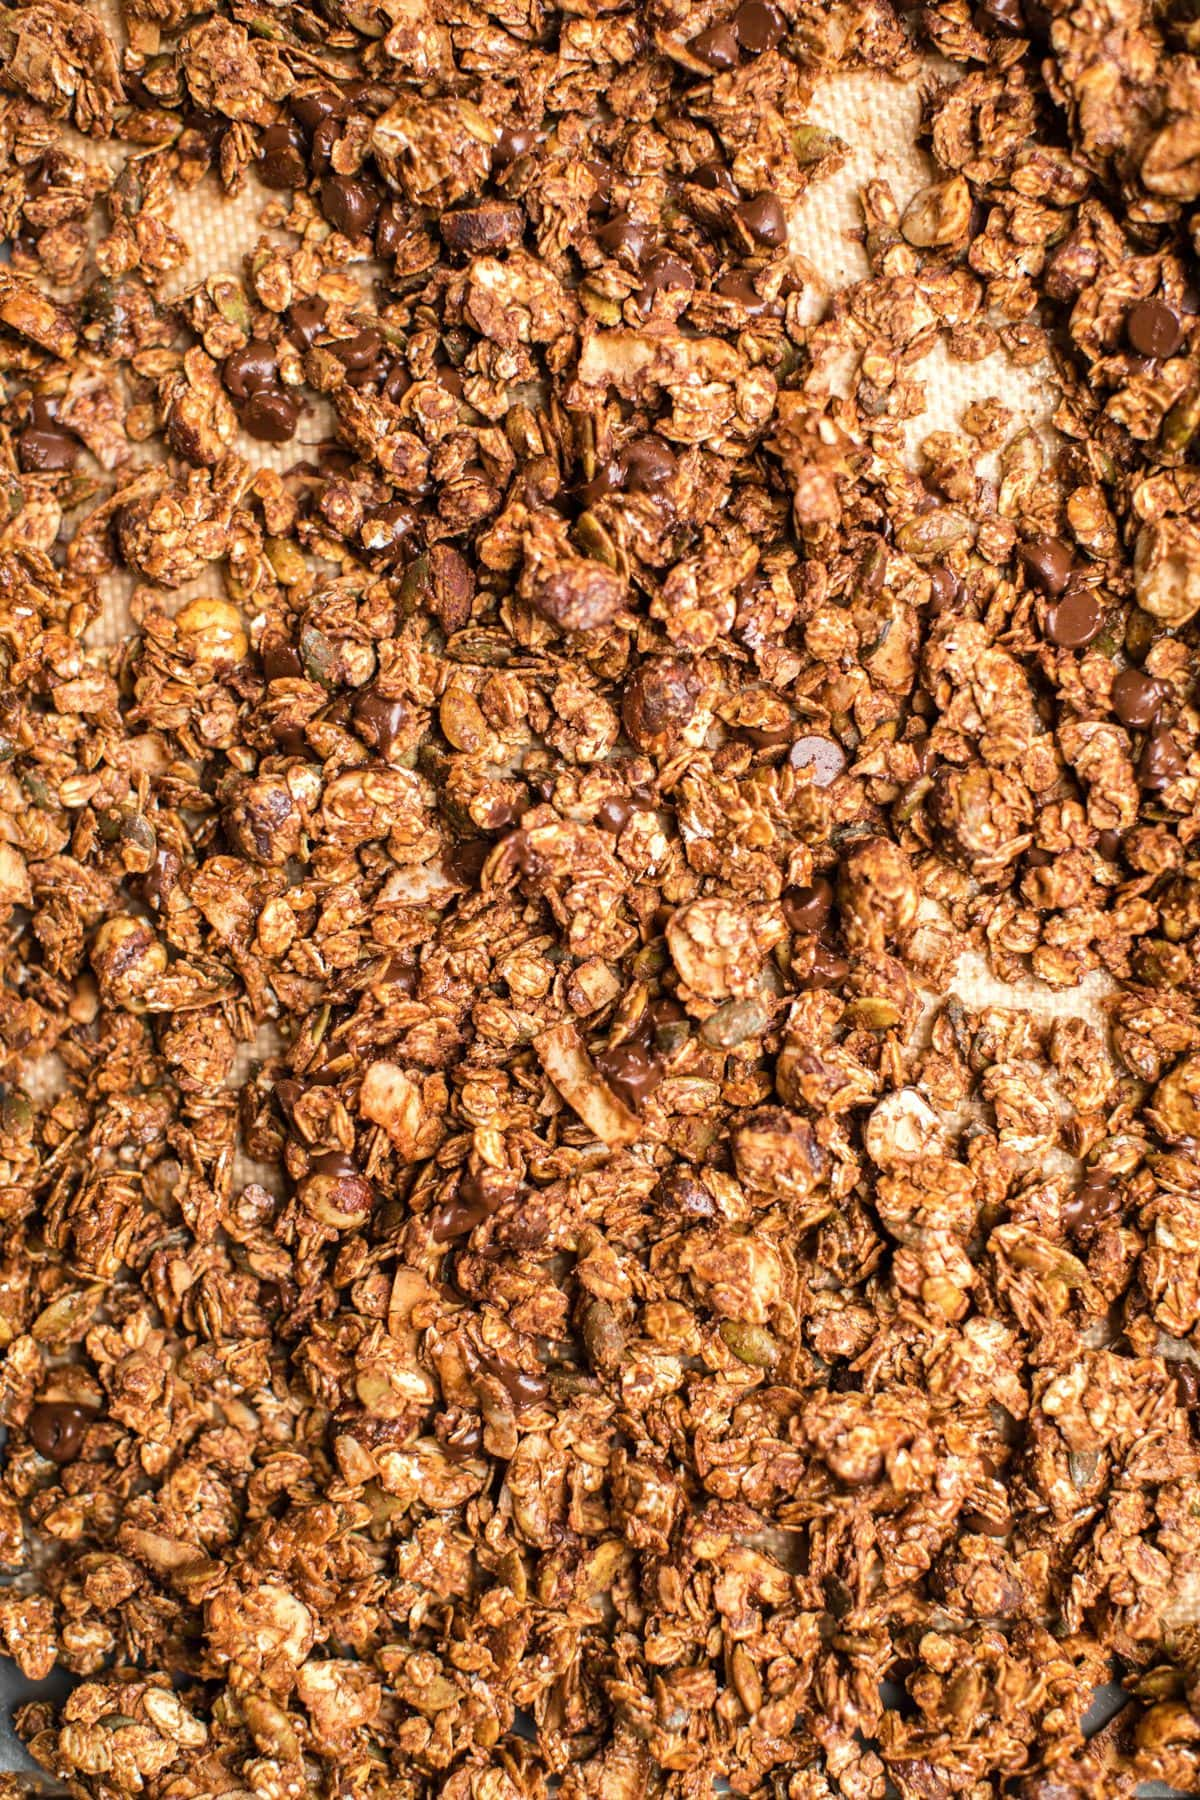 baked chocolate hazelnut granola spread out on baking tray lined with silicone mat